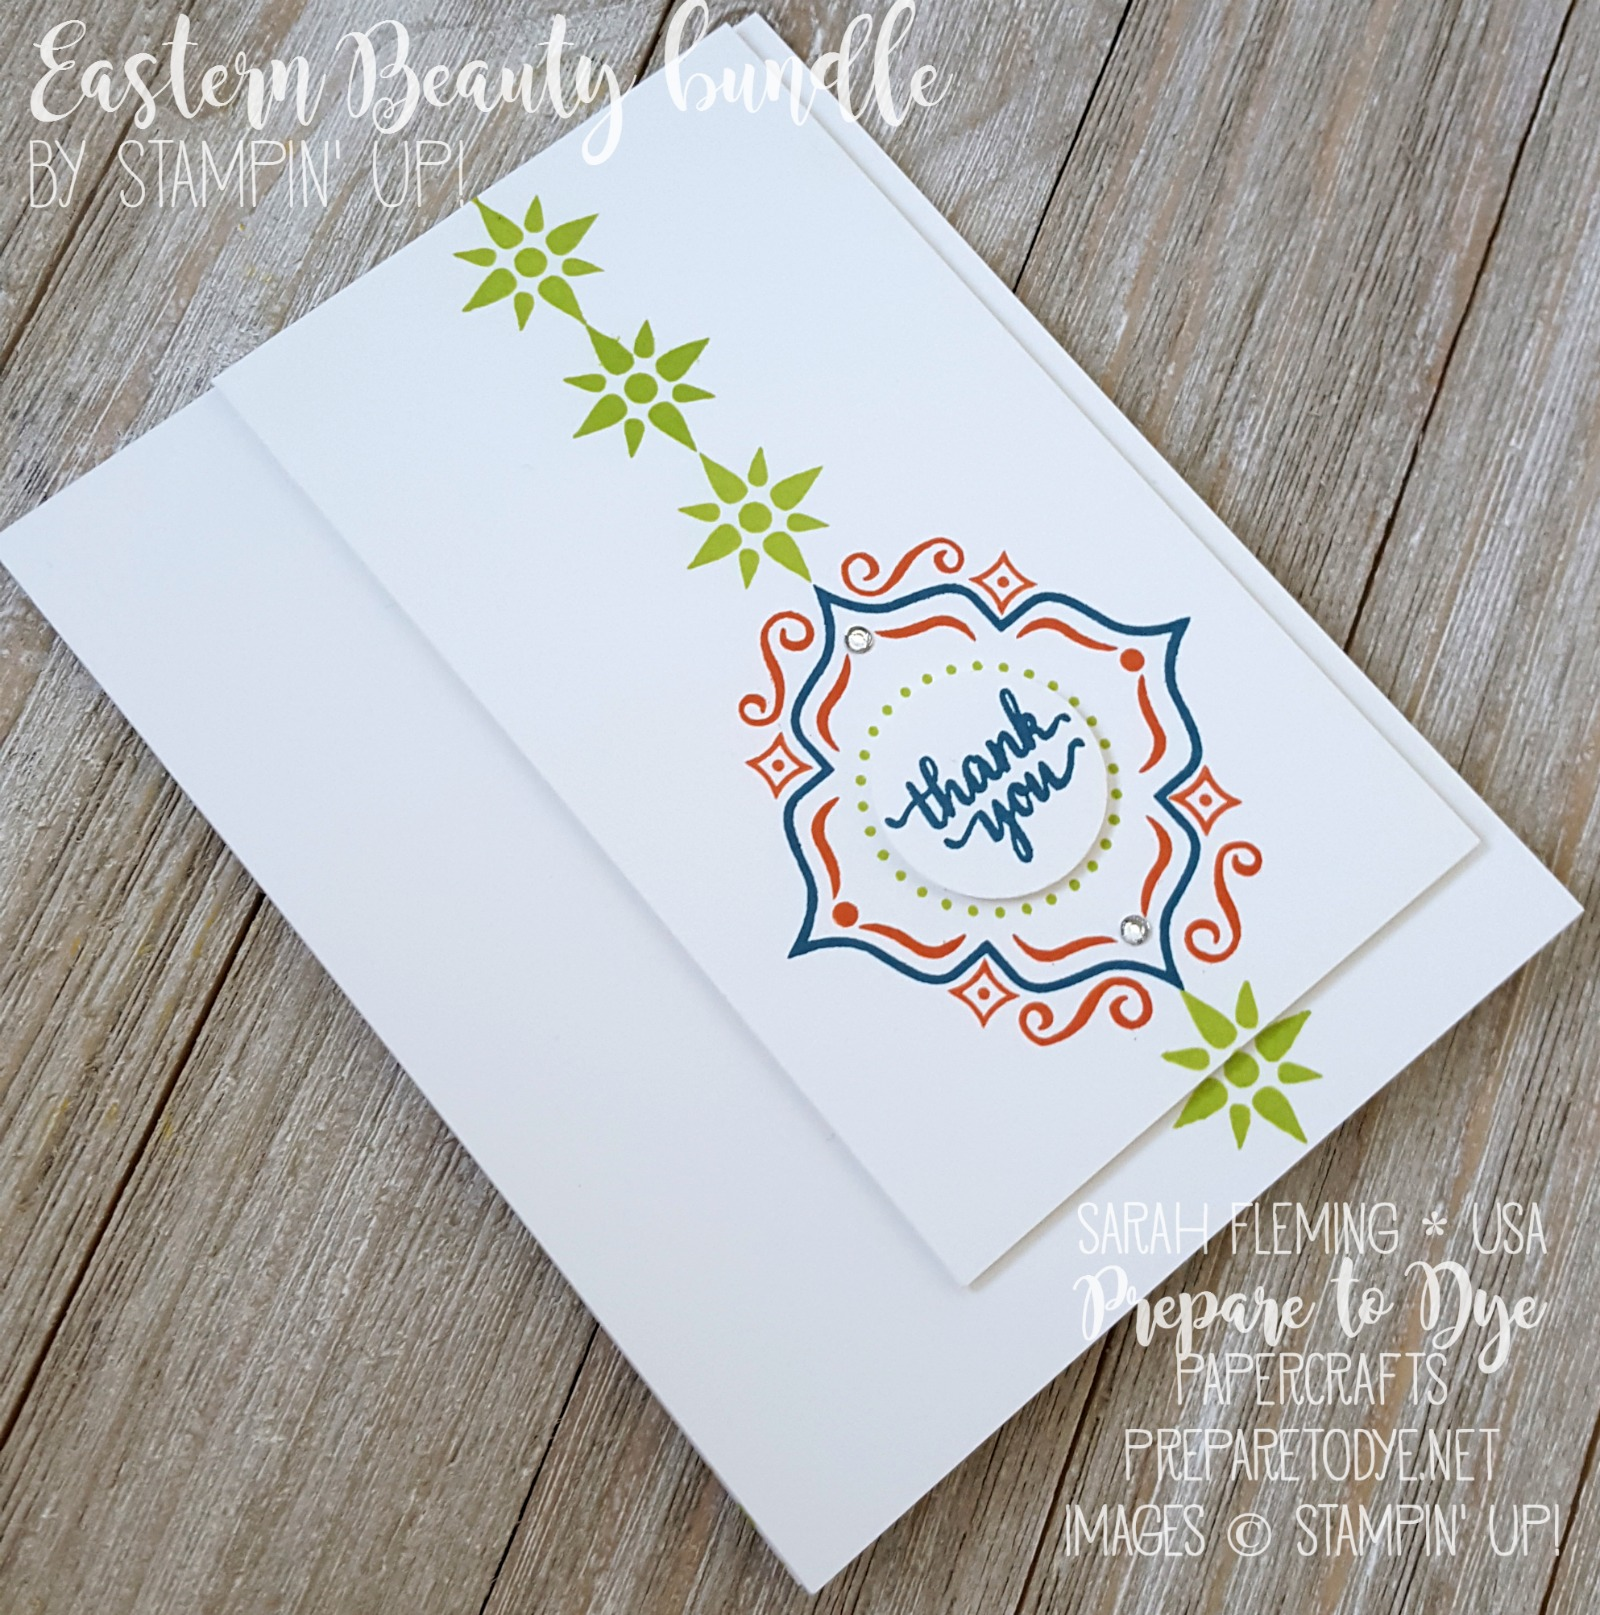 Stampin' Up! Eastern Beauty bundle handmade masculine card for Kylie's International Blog Highlight - CAS - clean and simple - Sarah Fleming - Prepare to Dye Papercrafts